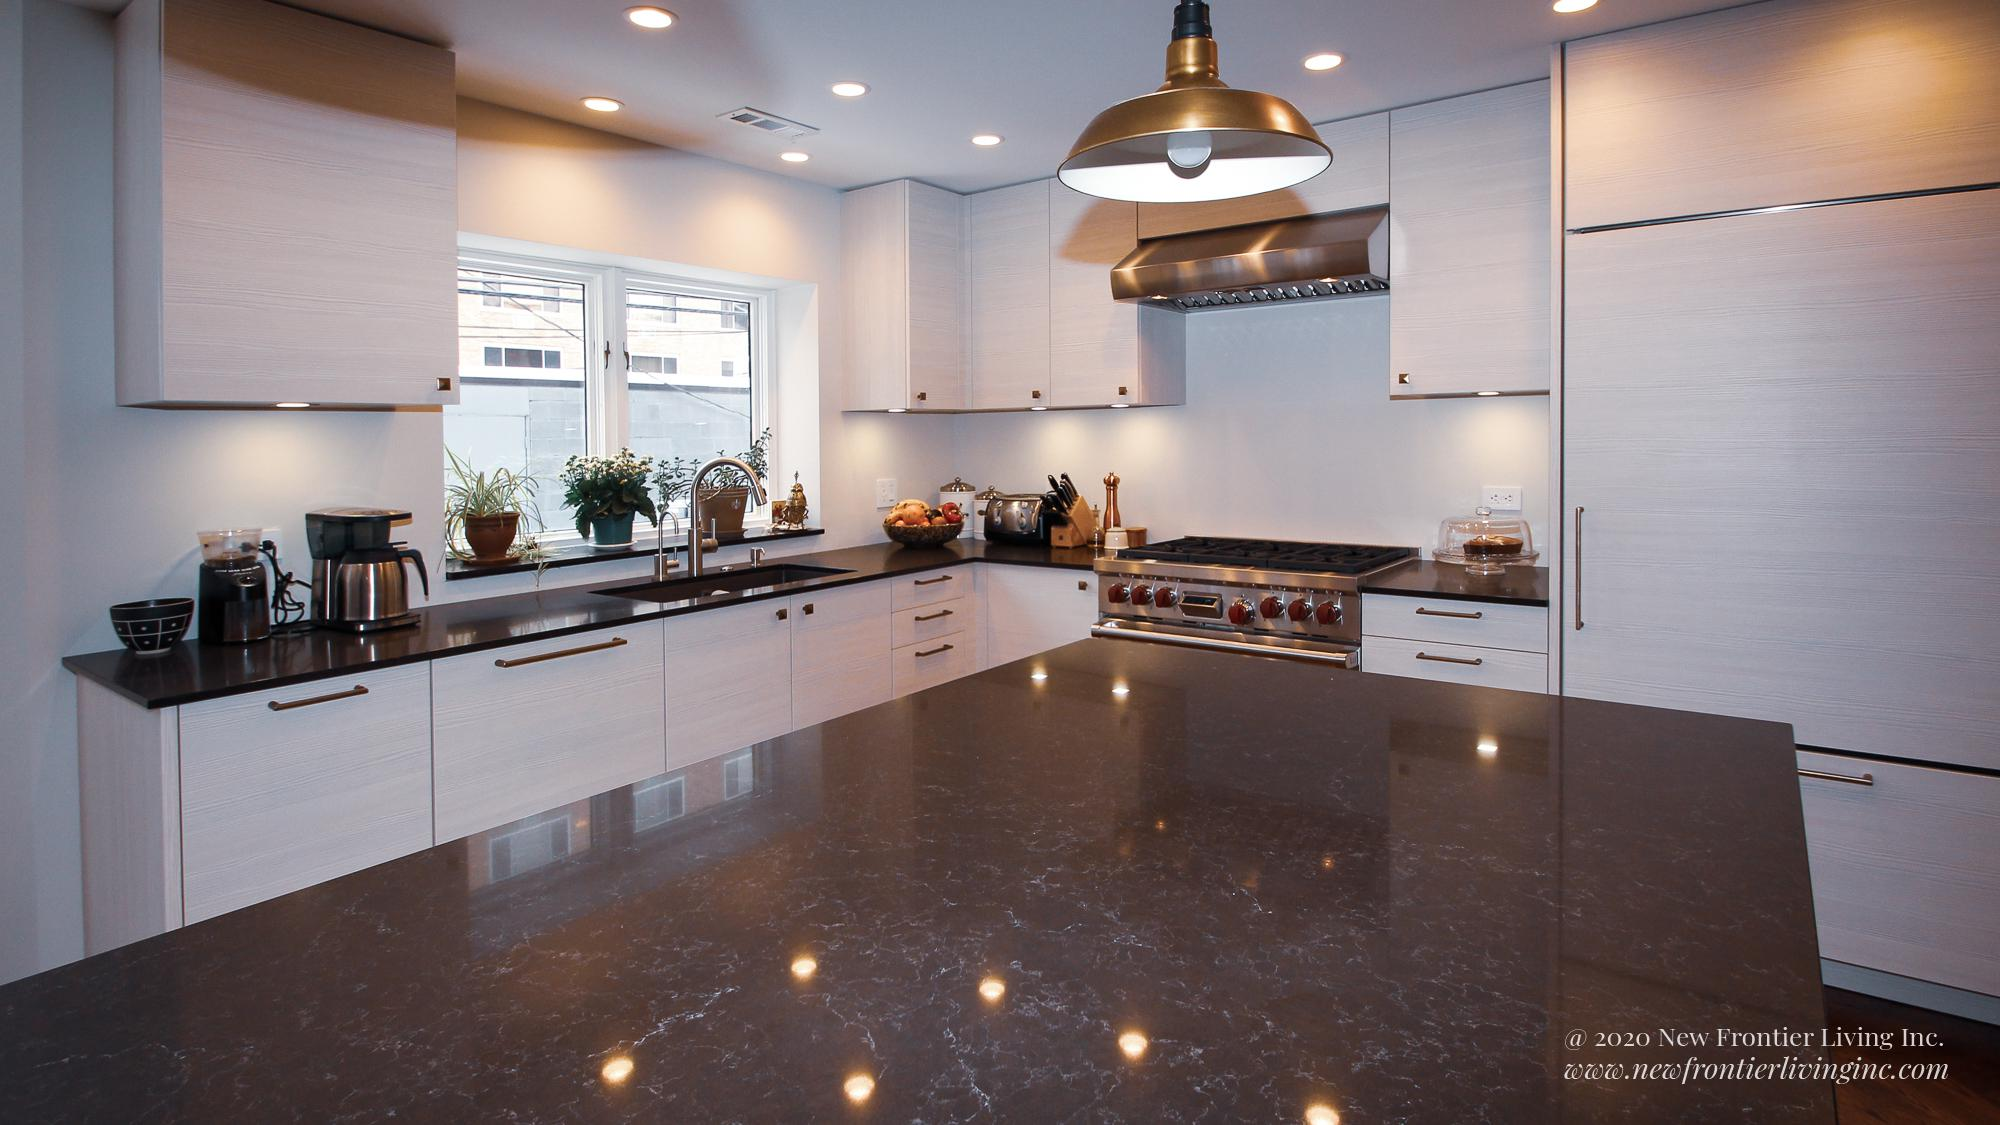 Cream kitchen with black countertop island view on to the other side with kitchen sink and cooktop